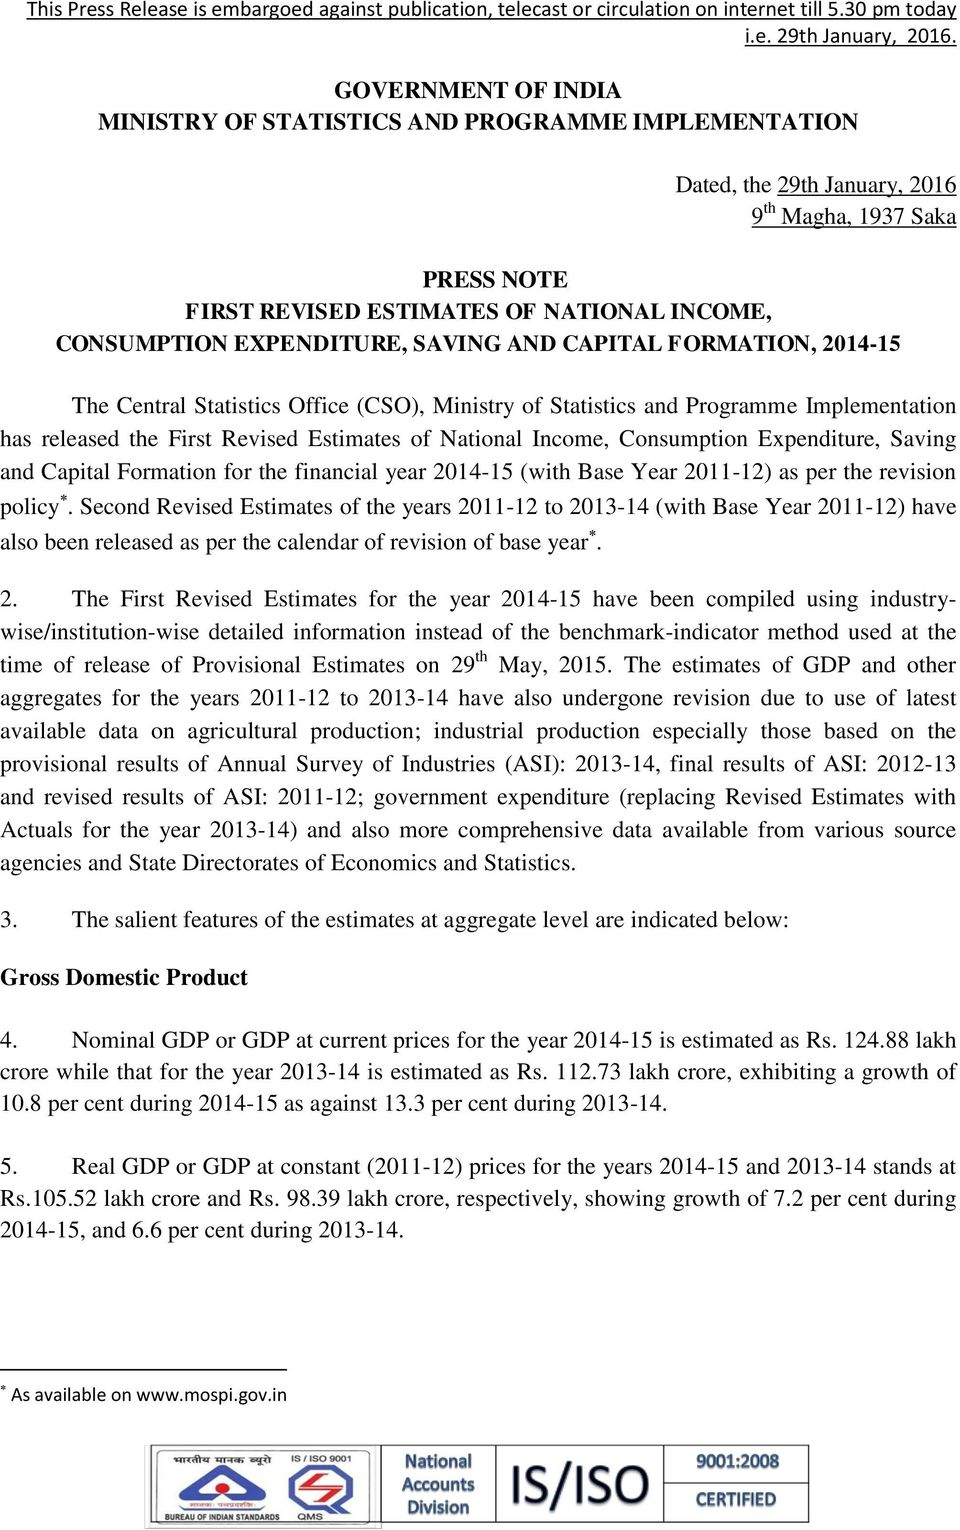 EXPENDITURE, SAVING AND CAPITAL FORMATION, 2014-15 The Central Statistics Office (CSO), Ministry of Statistics and Programme Implementation has released the First Revised Estimates of National